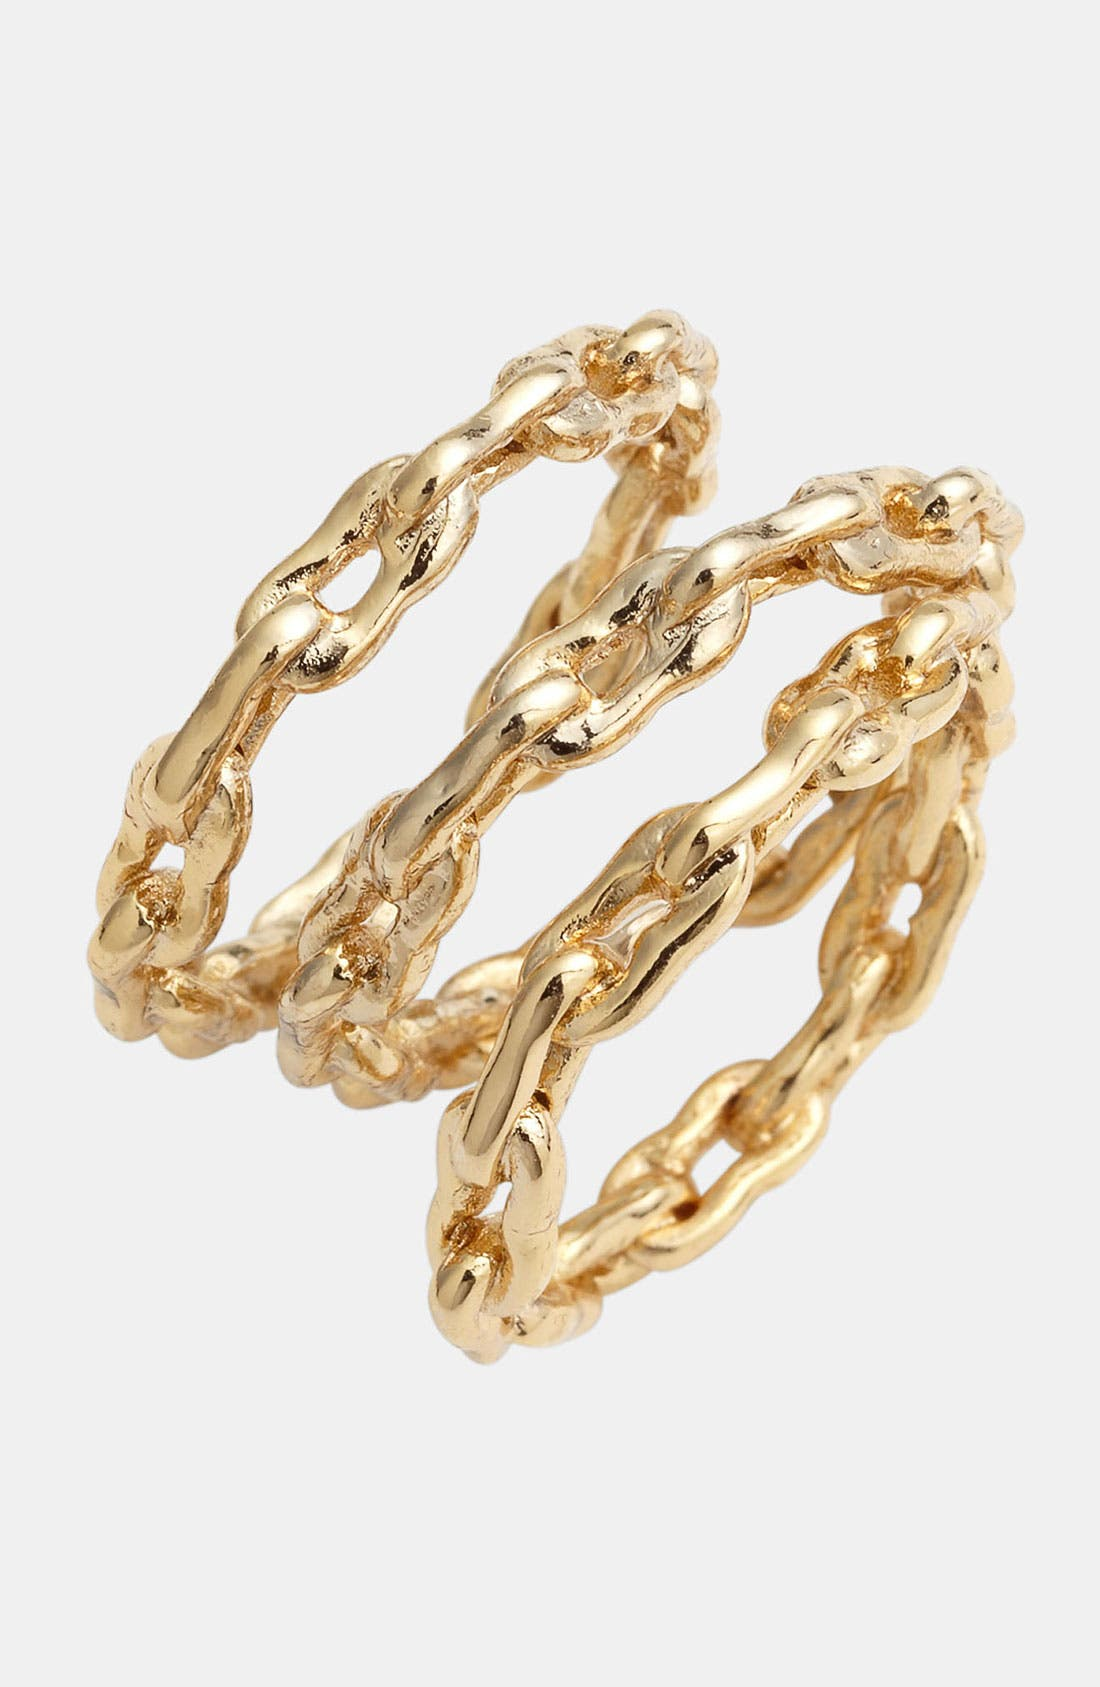 Main Image - Kelly Wearstler Bent Link Rings (Set of 3)